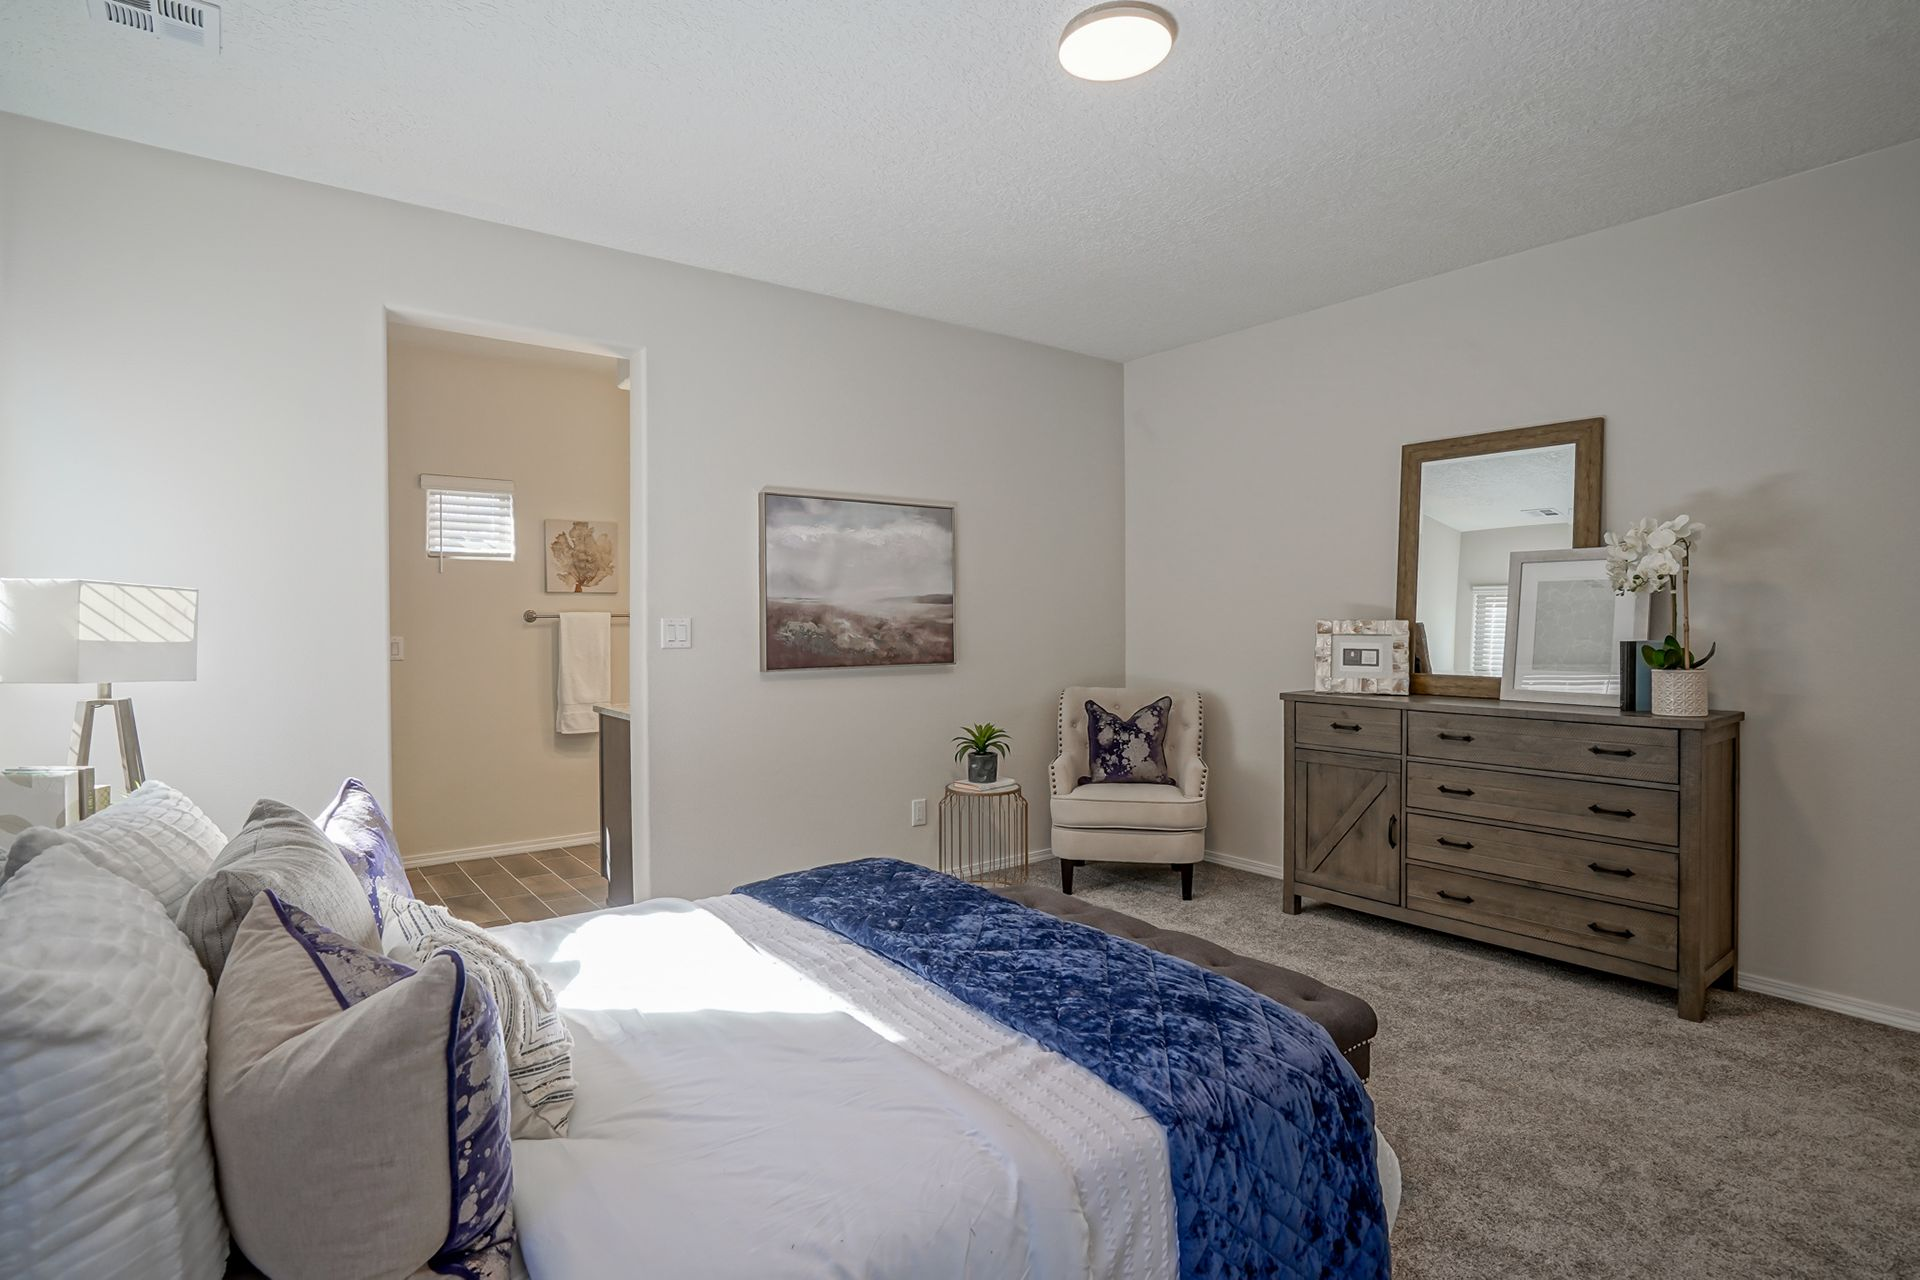 Bedroom featured in The IPA By Abrazo Homes in Albuquerque, NM